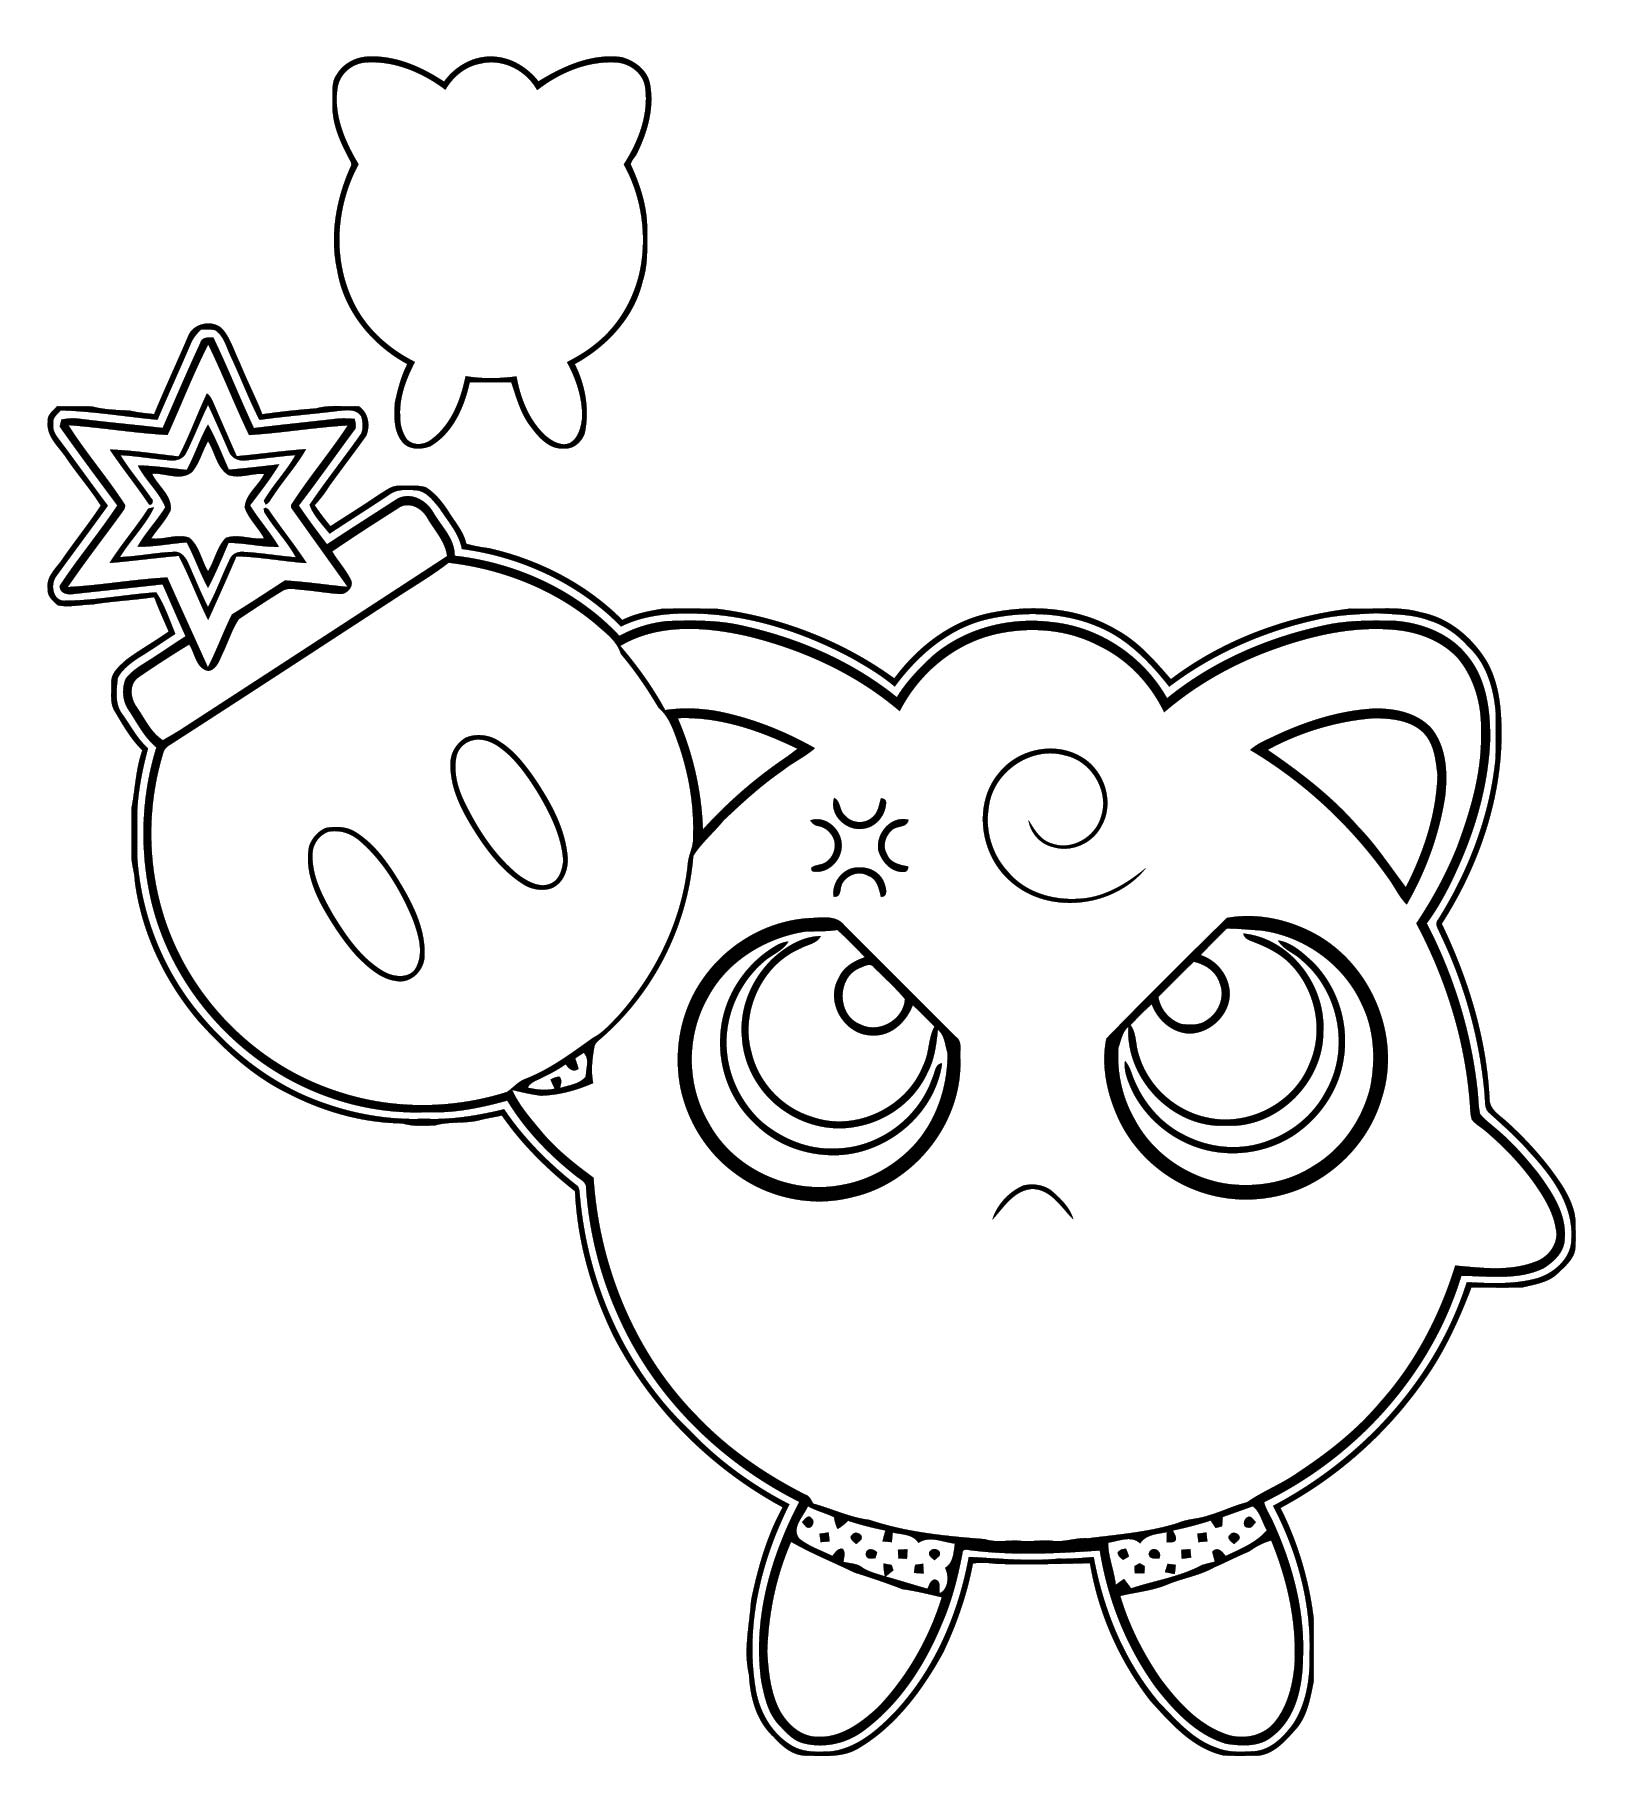 Explosive Jigglypuff Coloring Page